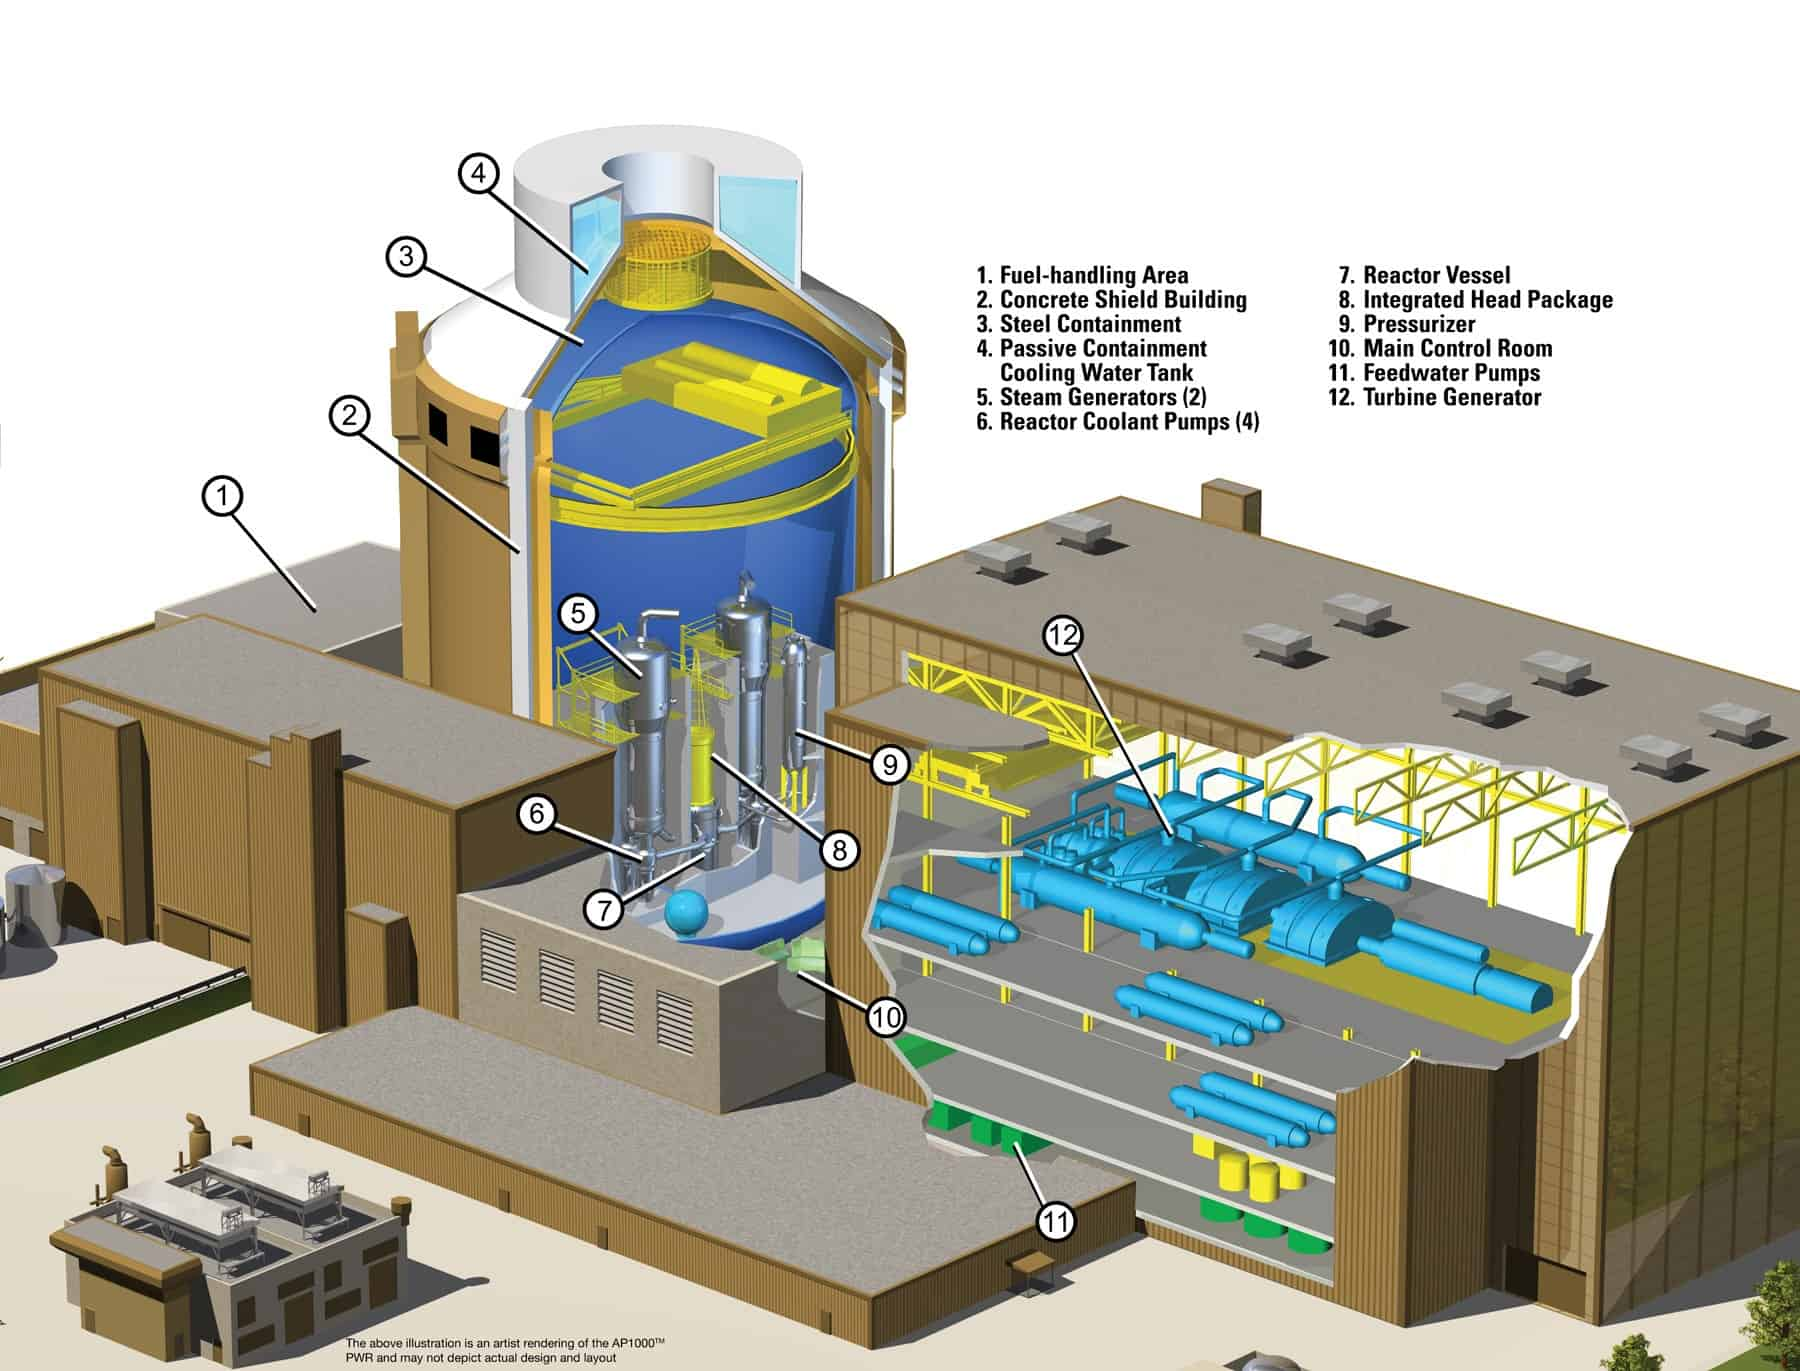 hight resolution of ap1000 nuclear power plant this illustration may not depict actual design and layout source www todaysengineer org